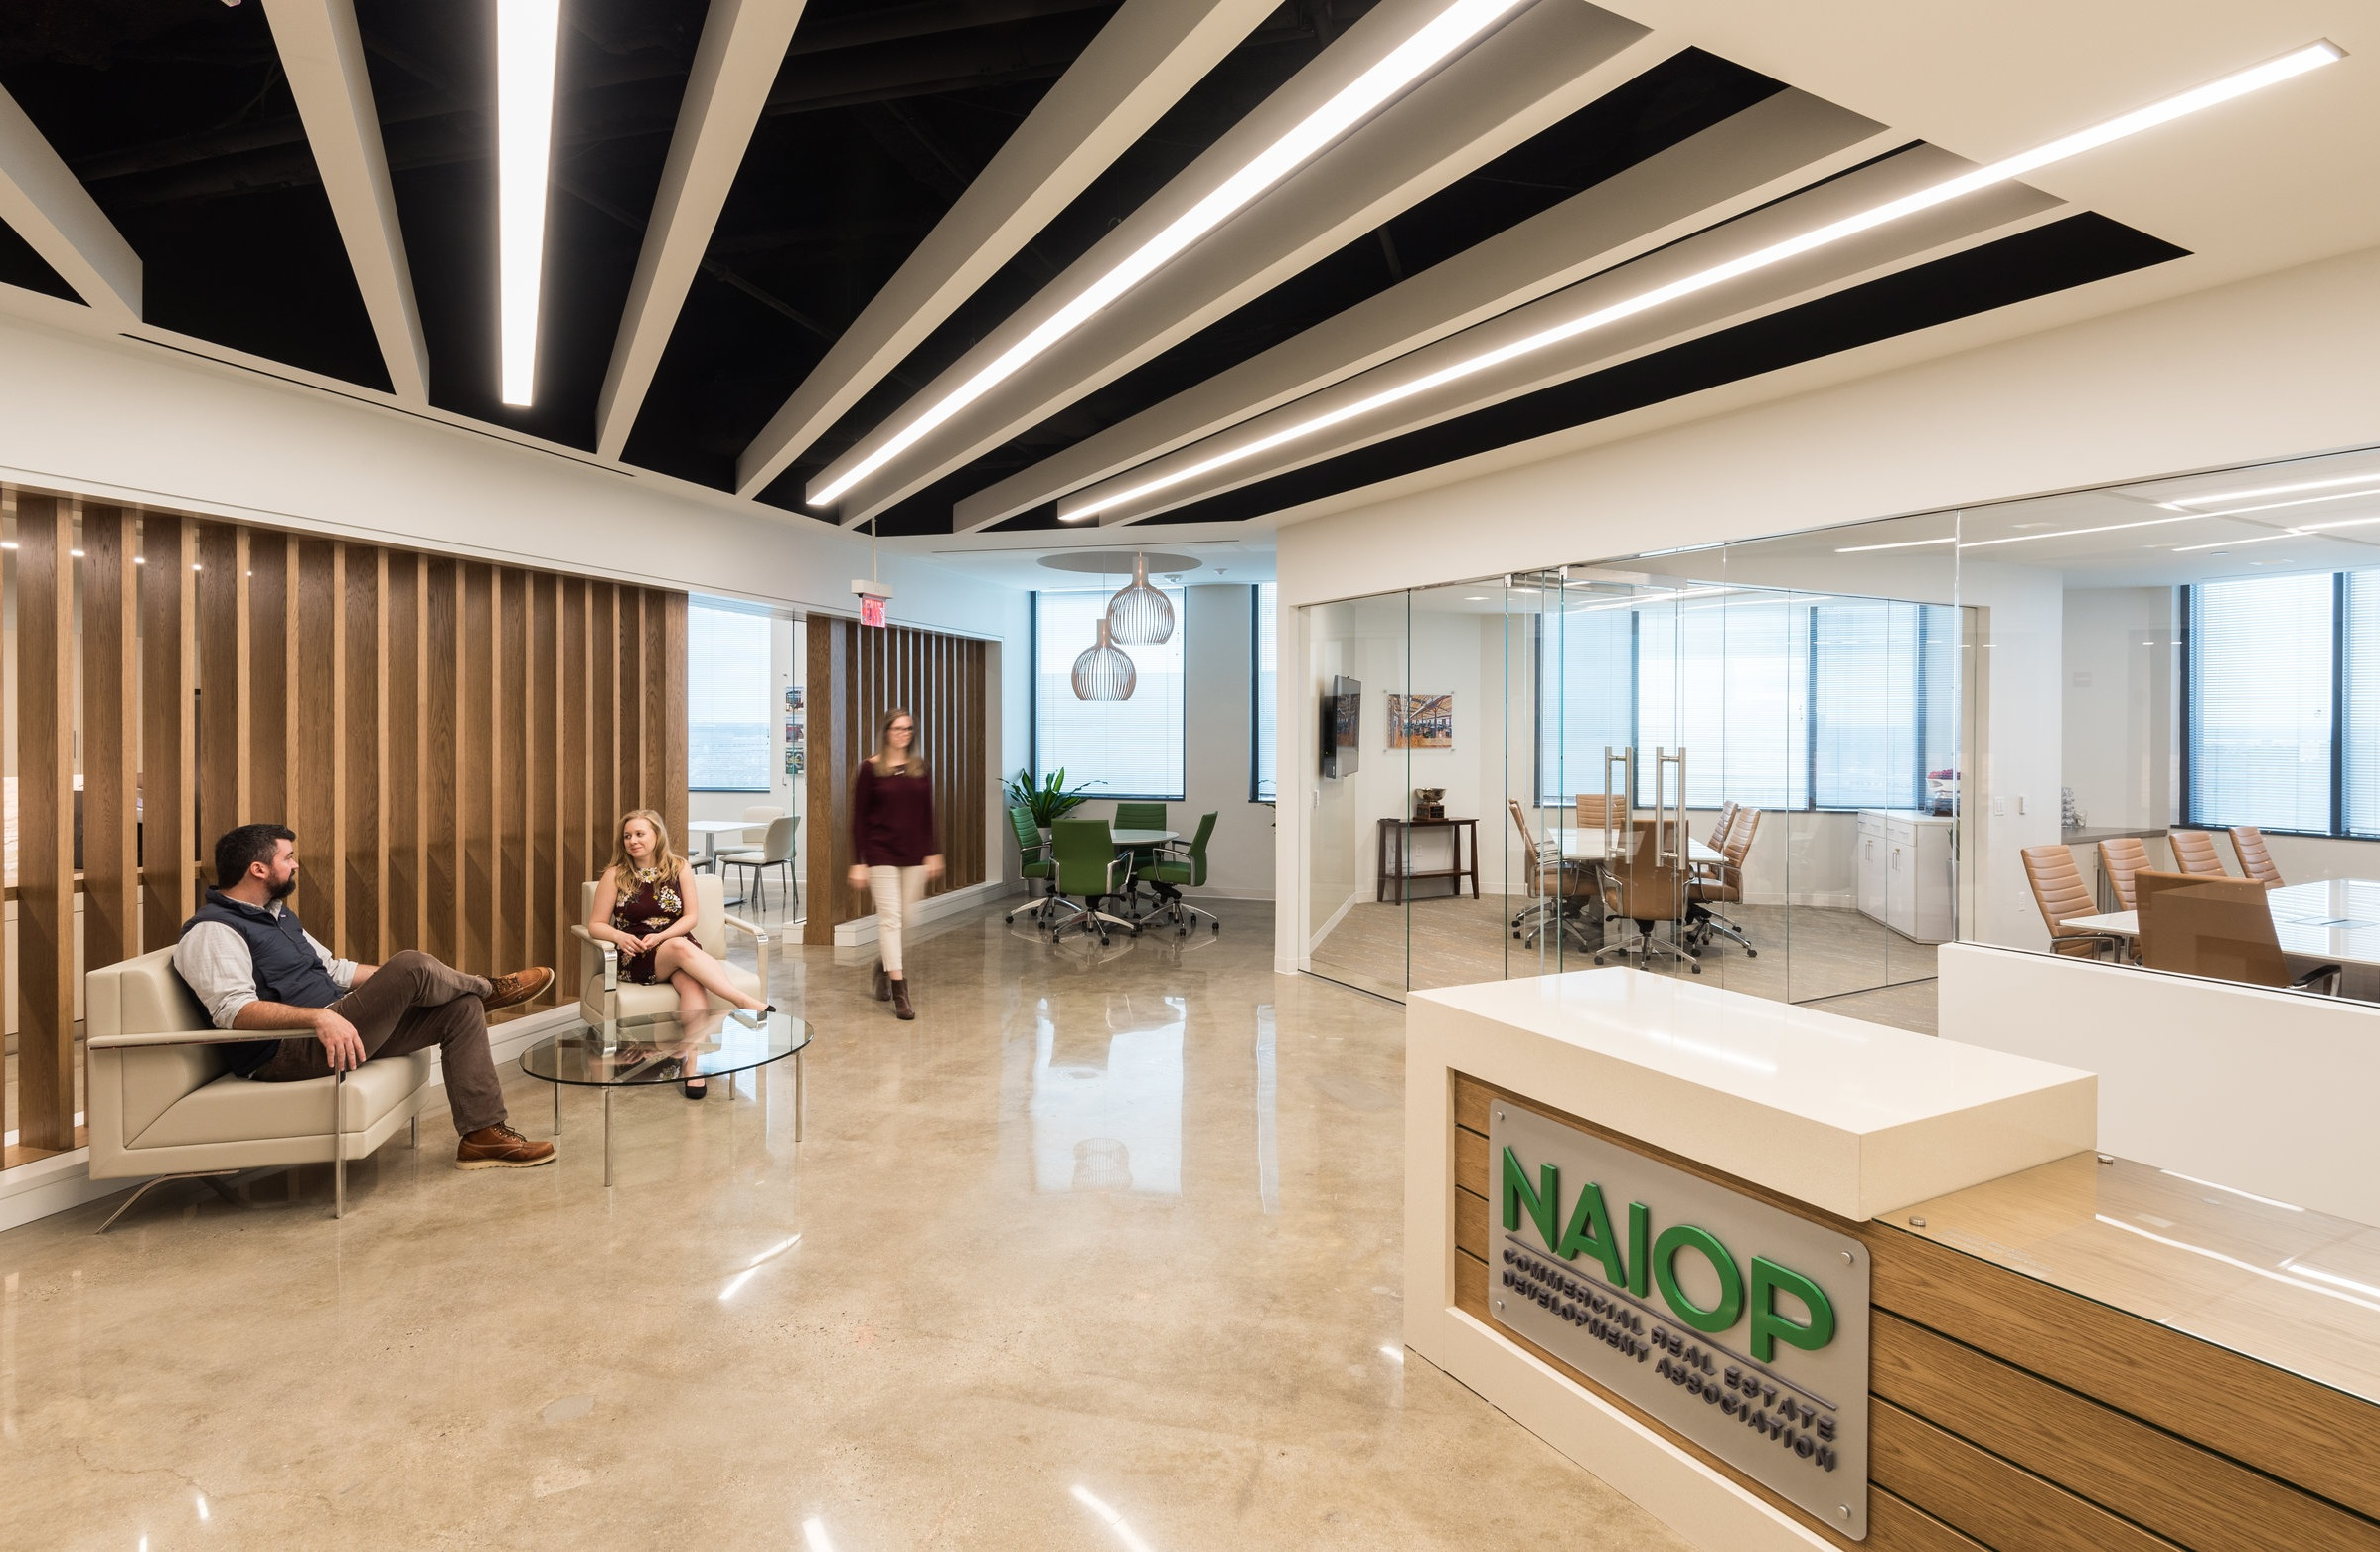 NAIOP Headquarters